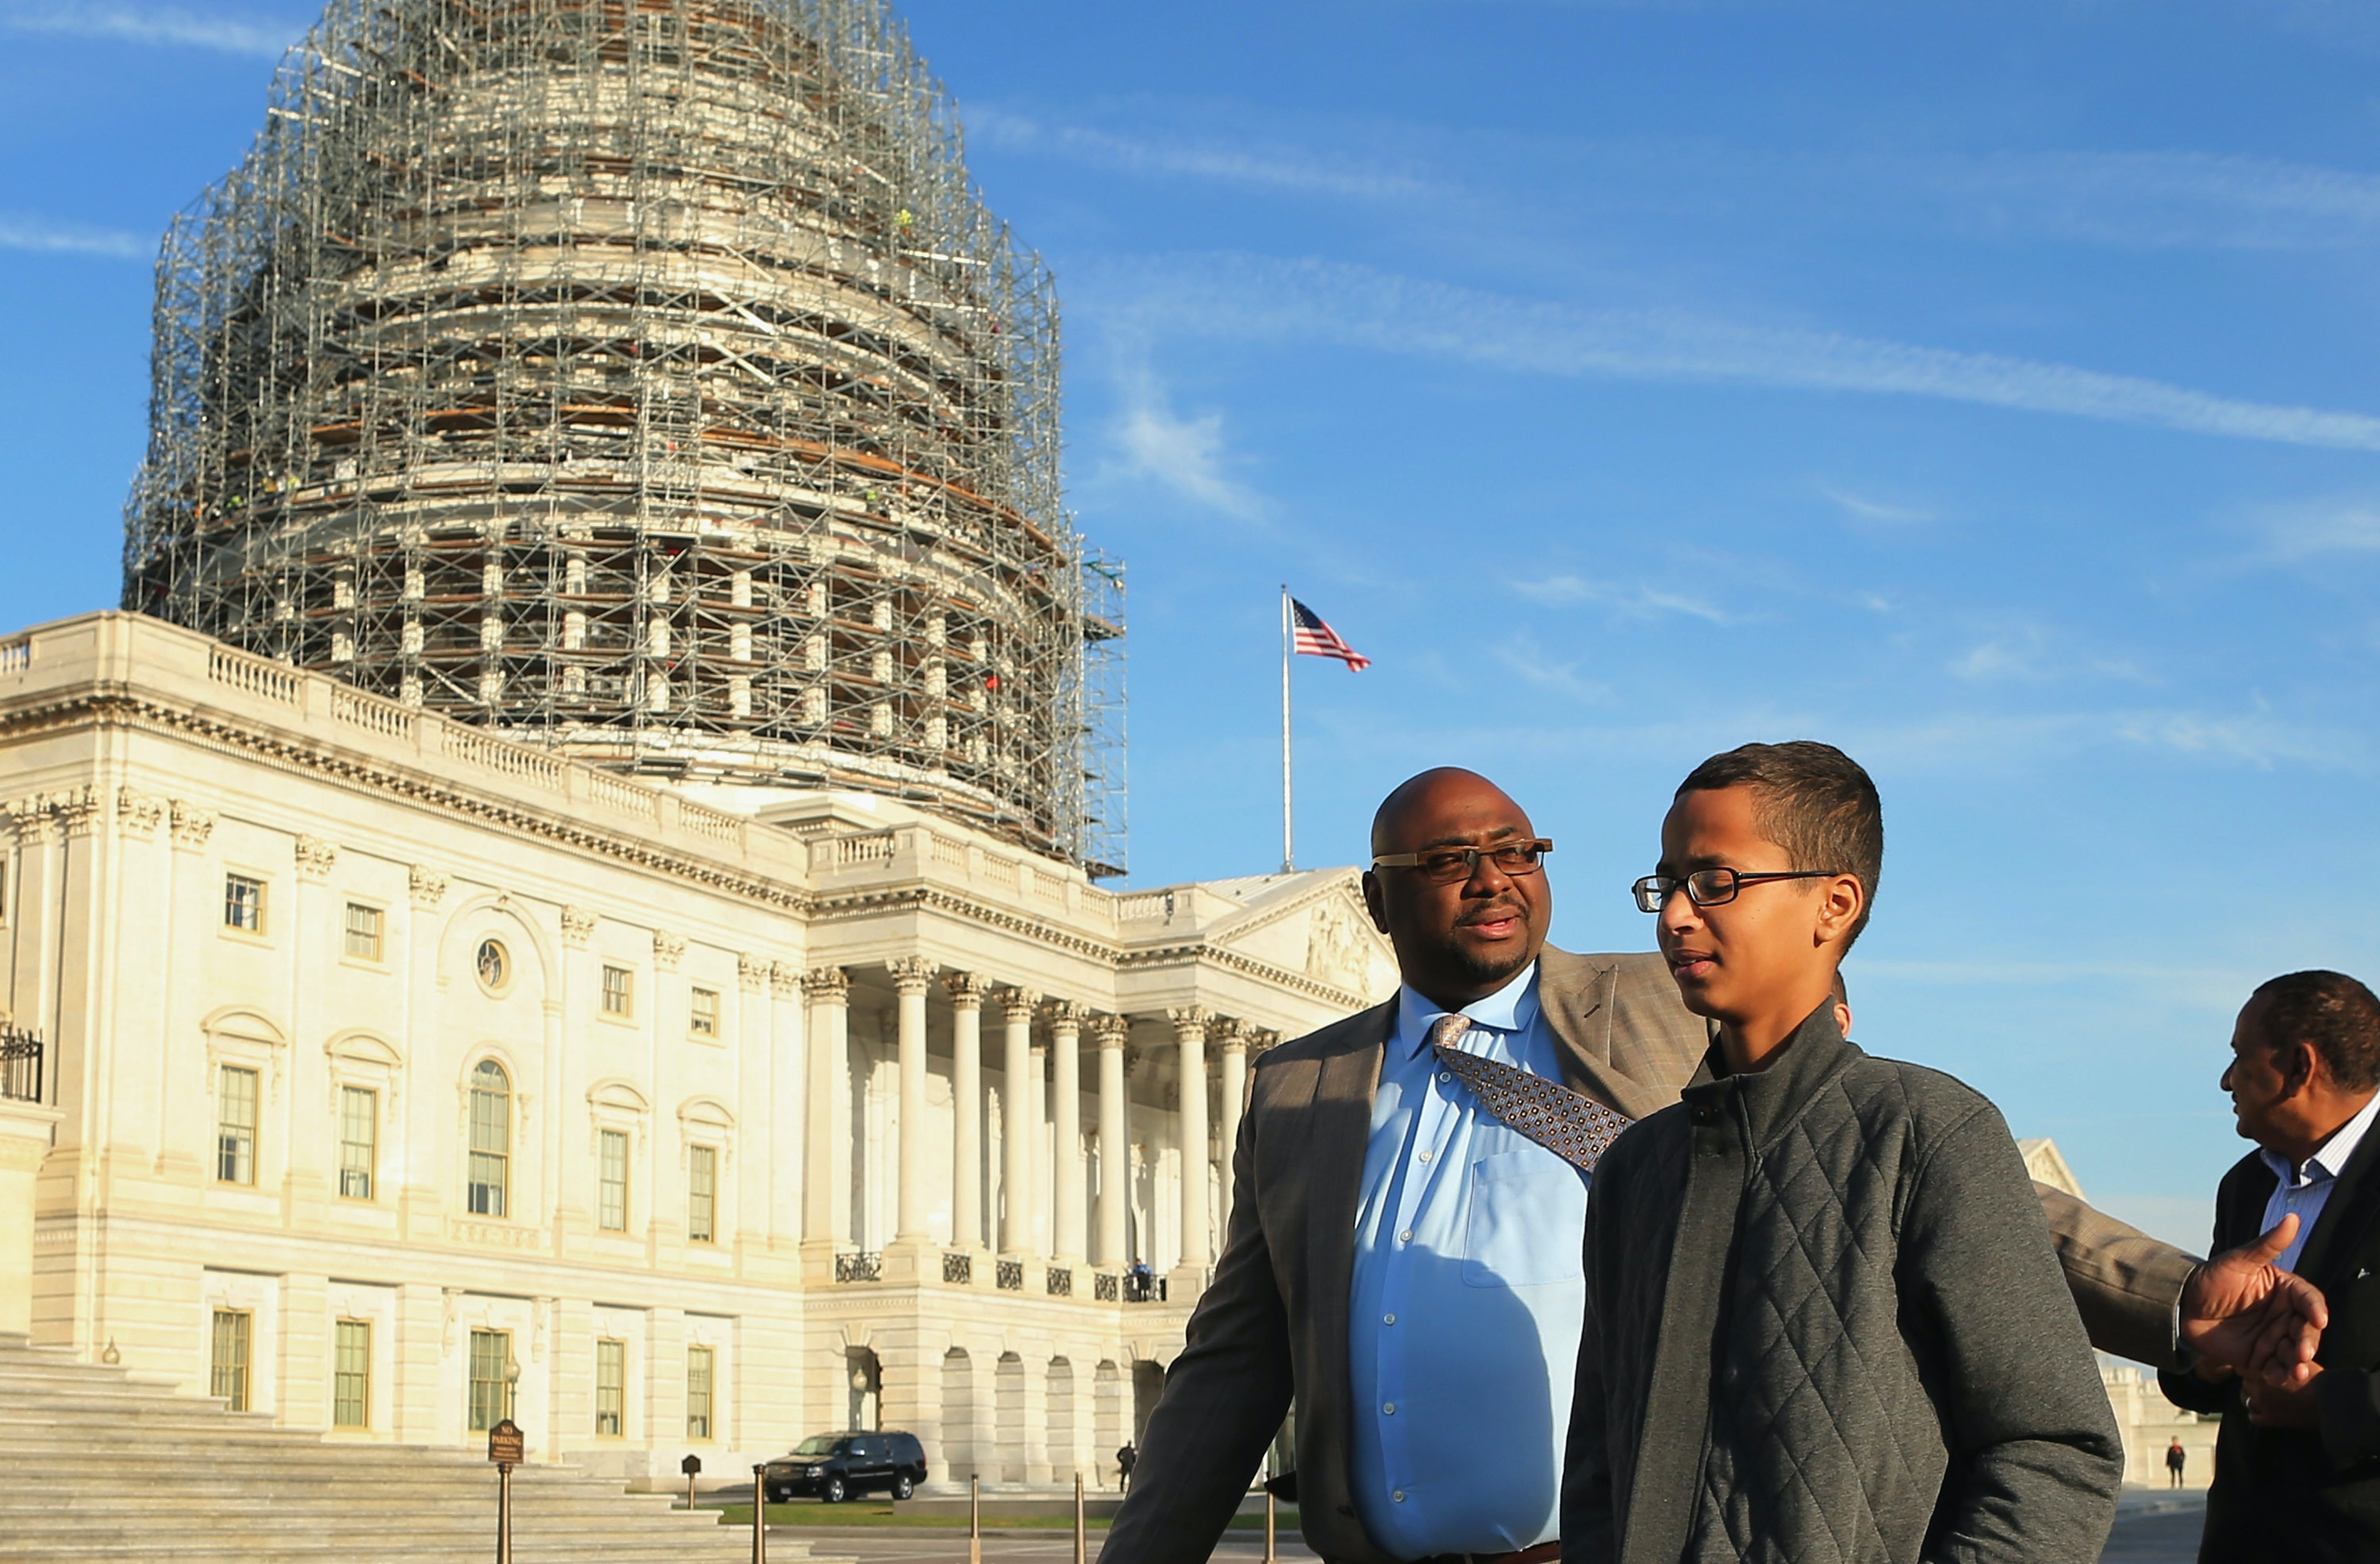 Ahmed Mohamed says he doesn't feel safe in the United States since the incident.